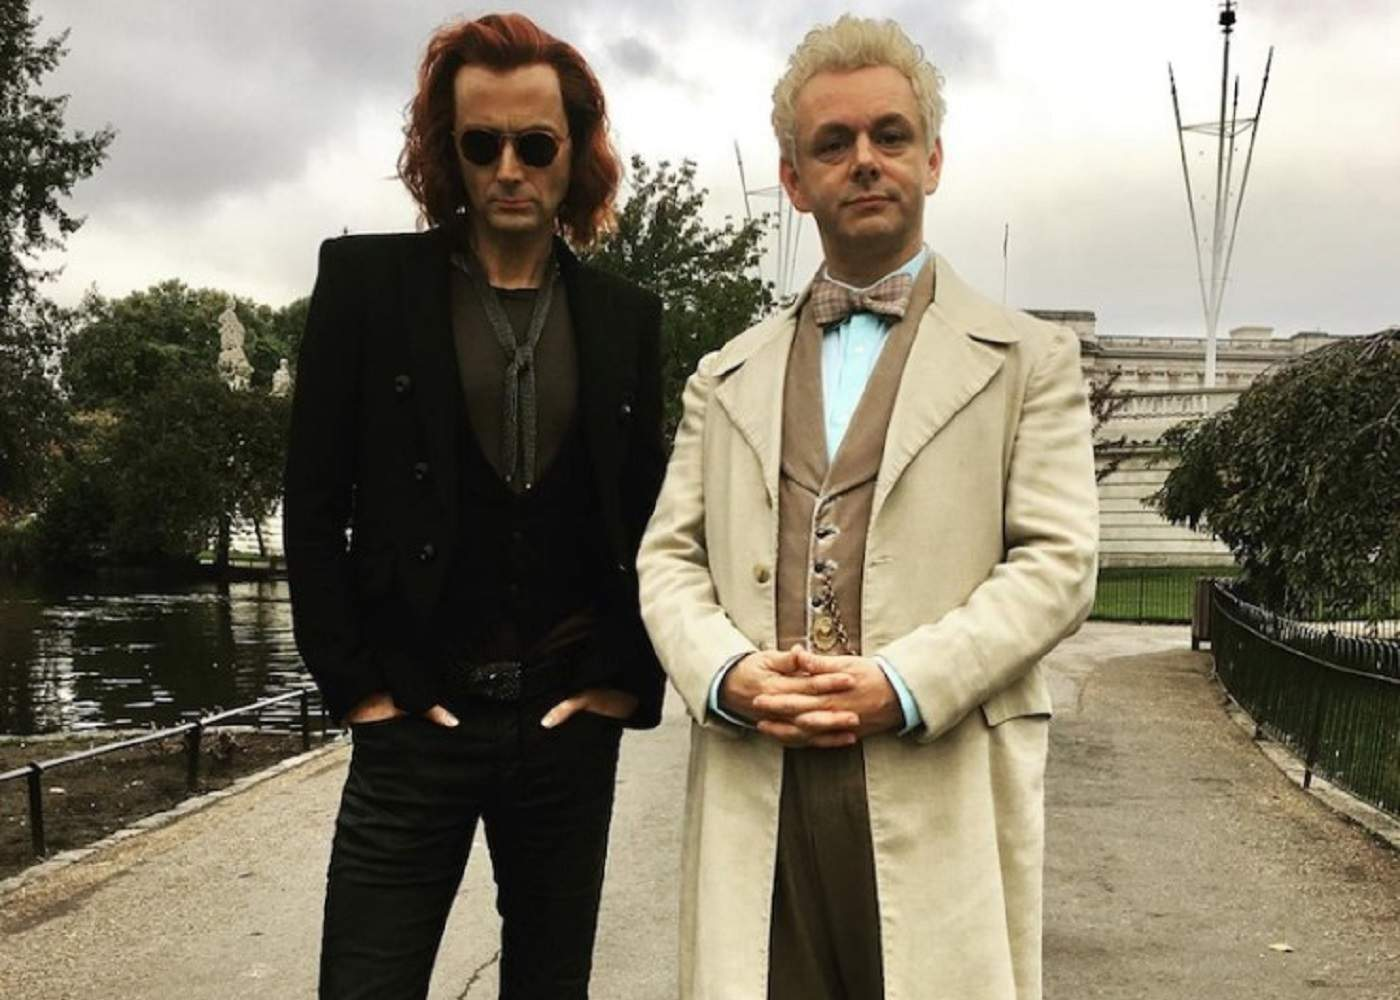 Meet Crowley and Aziraphale in Good Omens